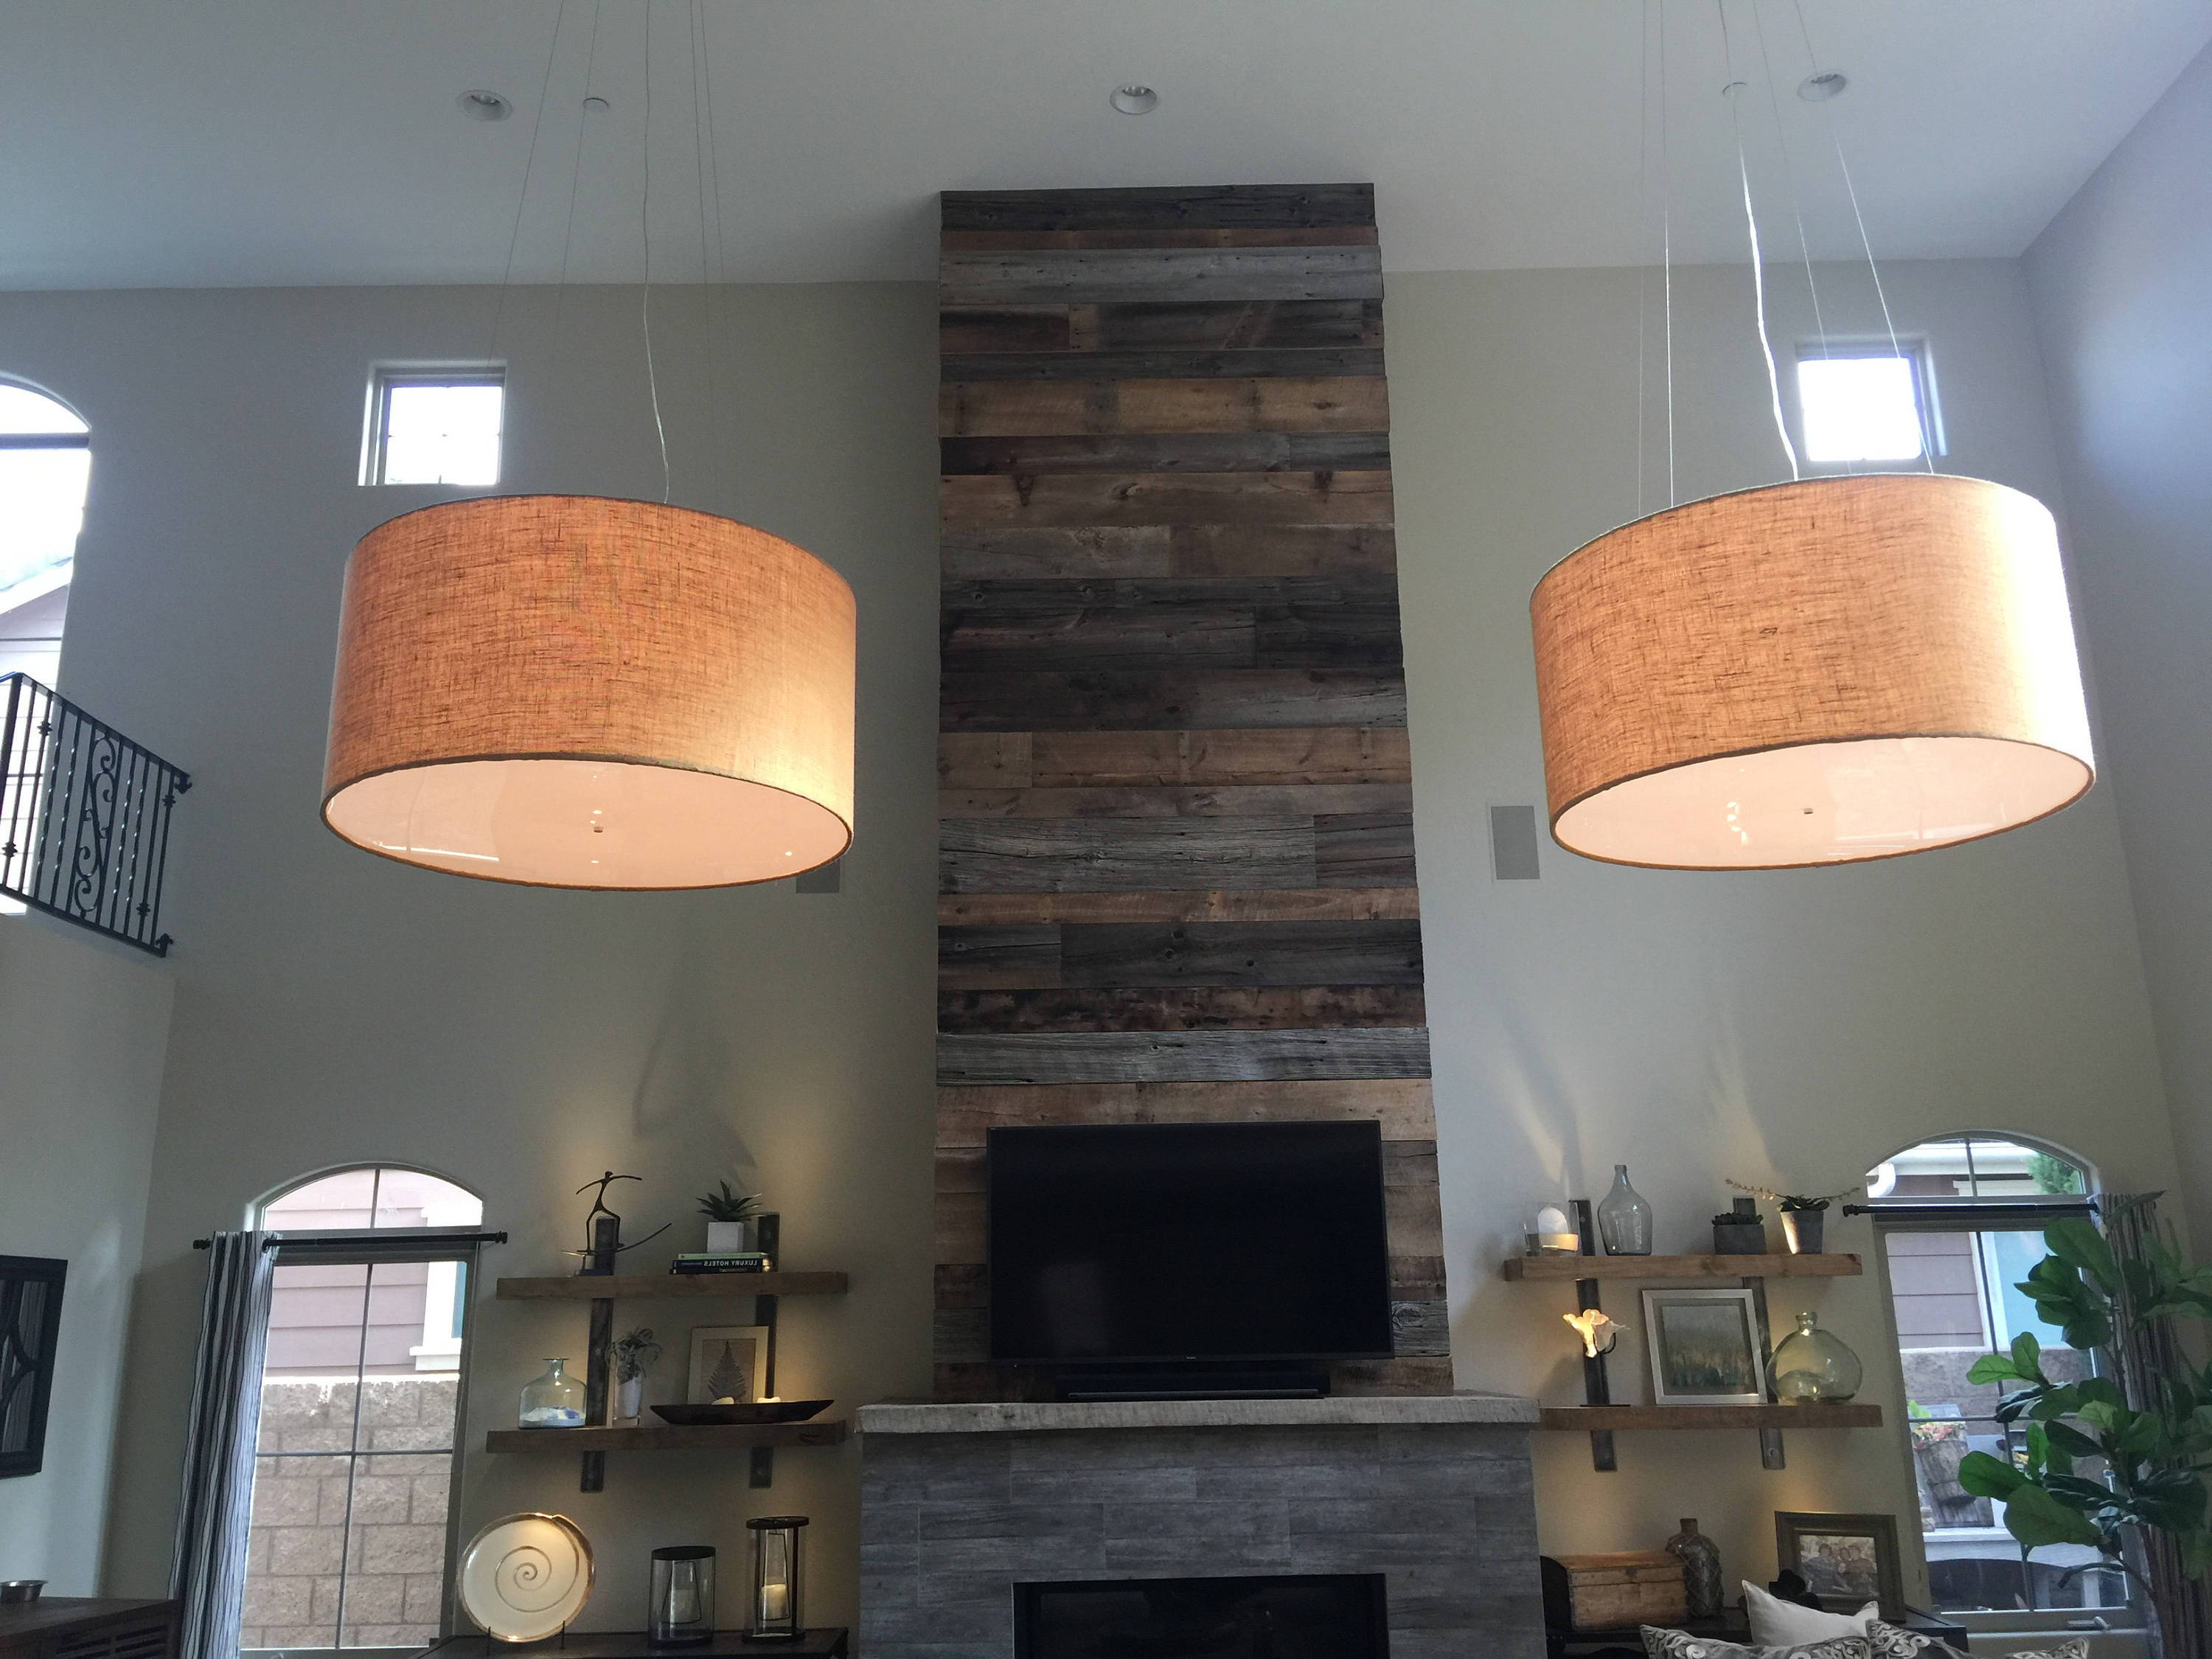 Well Known Custom 48 Inch Extra Large Drum Pendant Light Fixture Throughout Vincent 5 Light Drum Chandeliers (View 18 of 25)